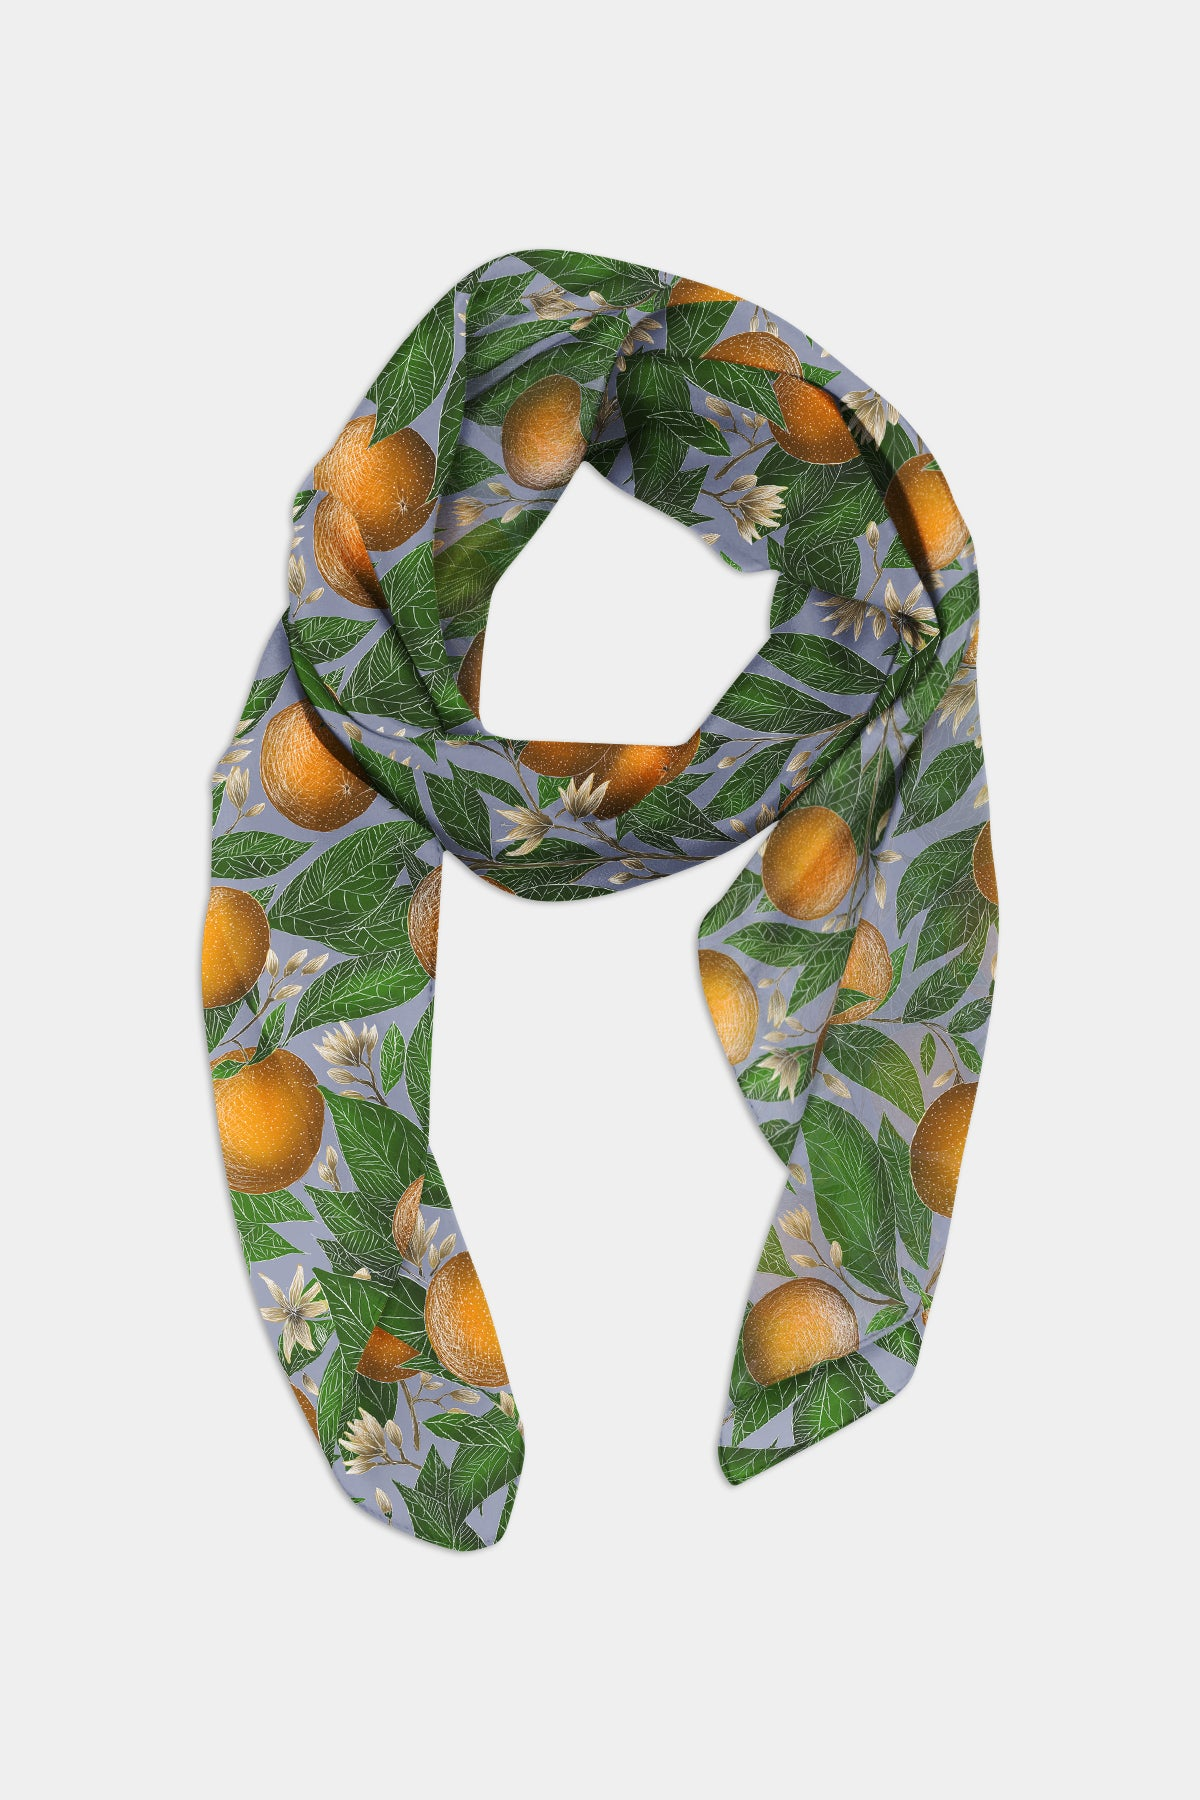 Orange Blossom Pattern Chiffon Scarf - 100% Silk or Vegan Silk